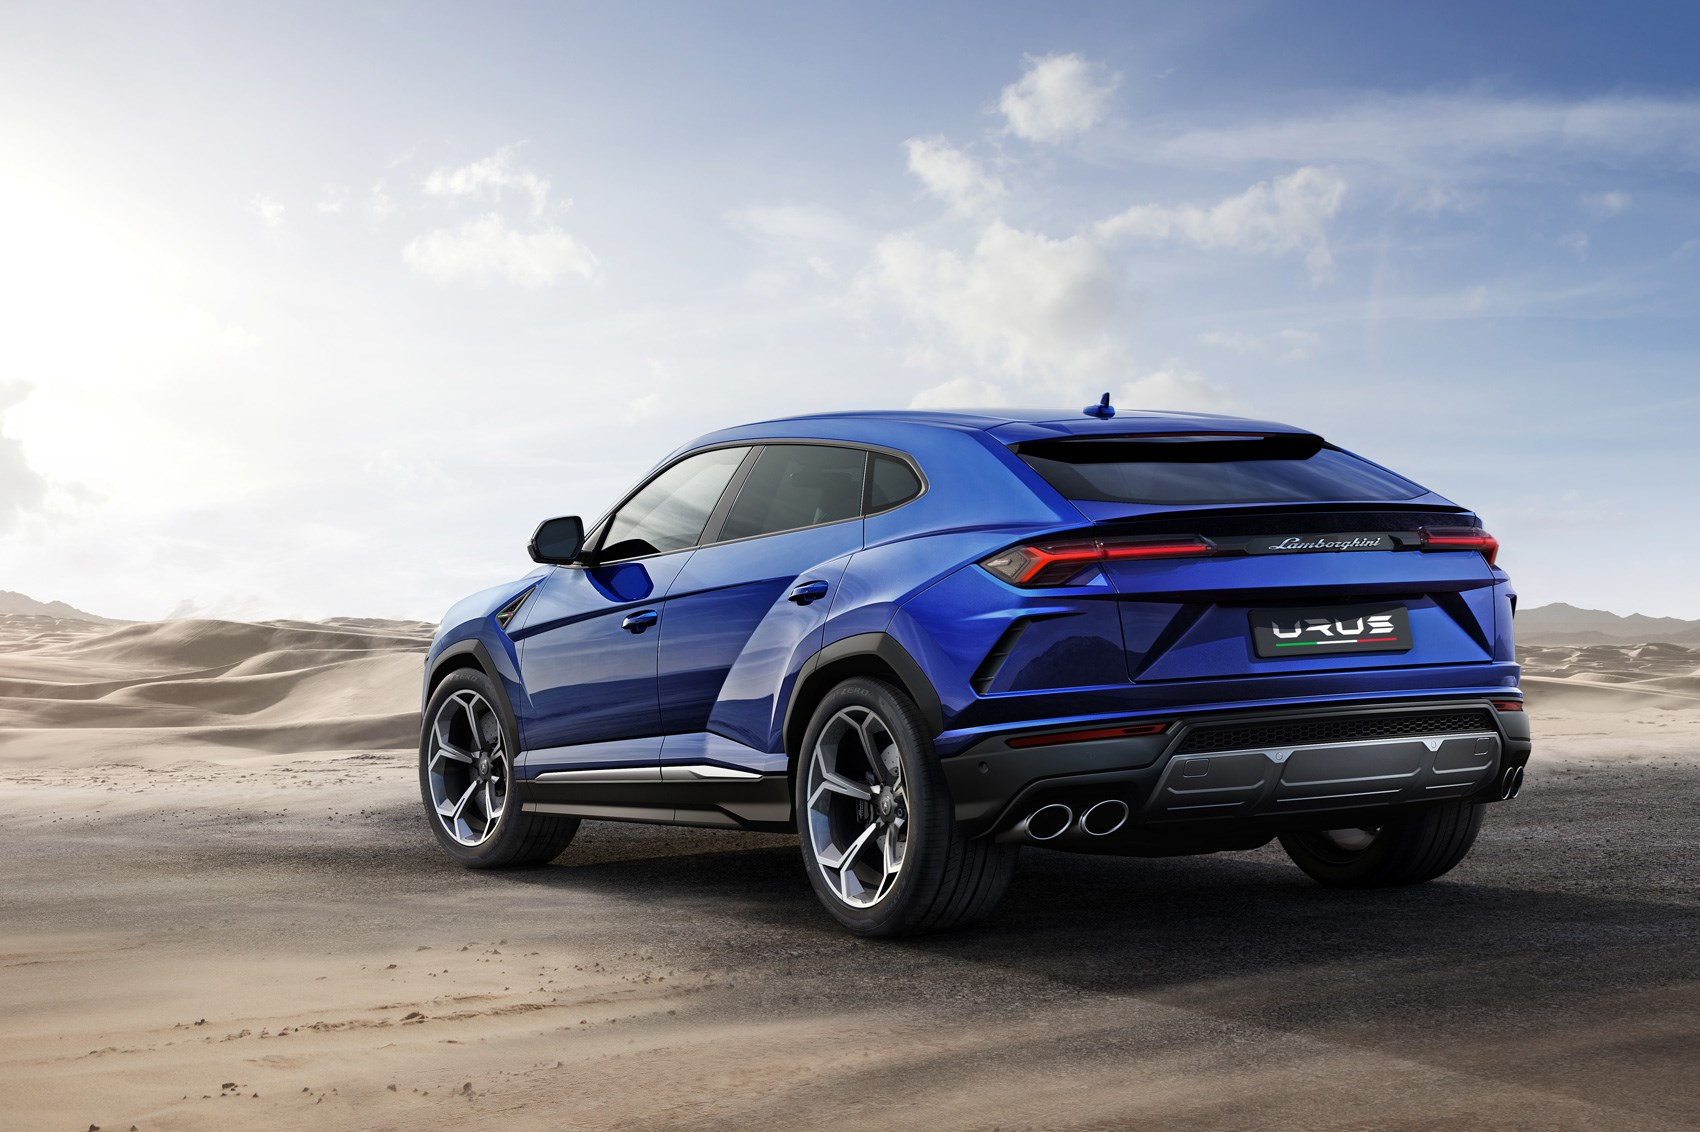 lamborghini urus 2018 suv everything you need to know car magazine. Black Bedroom Furniture Sets. Home Design Ideas